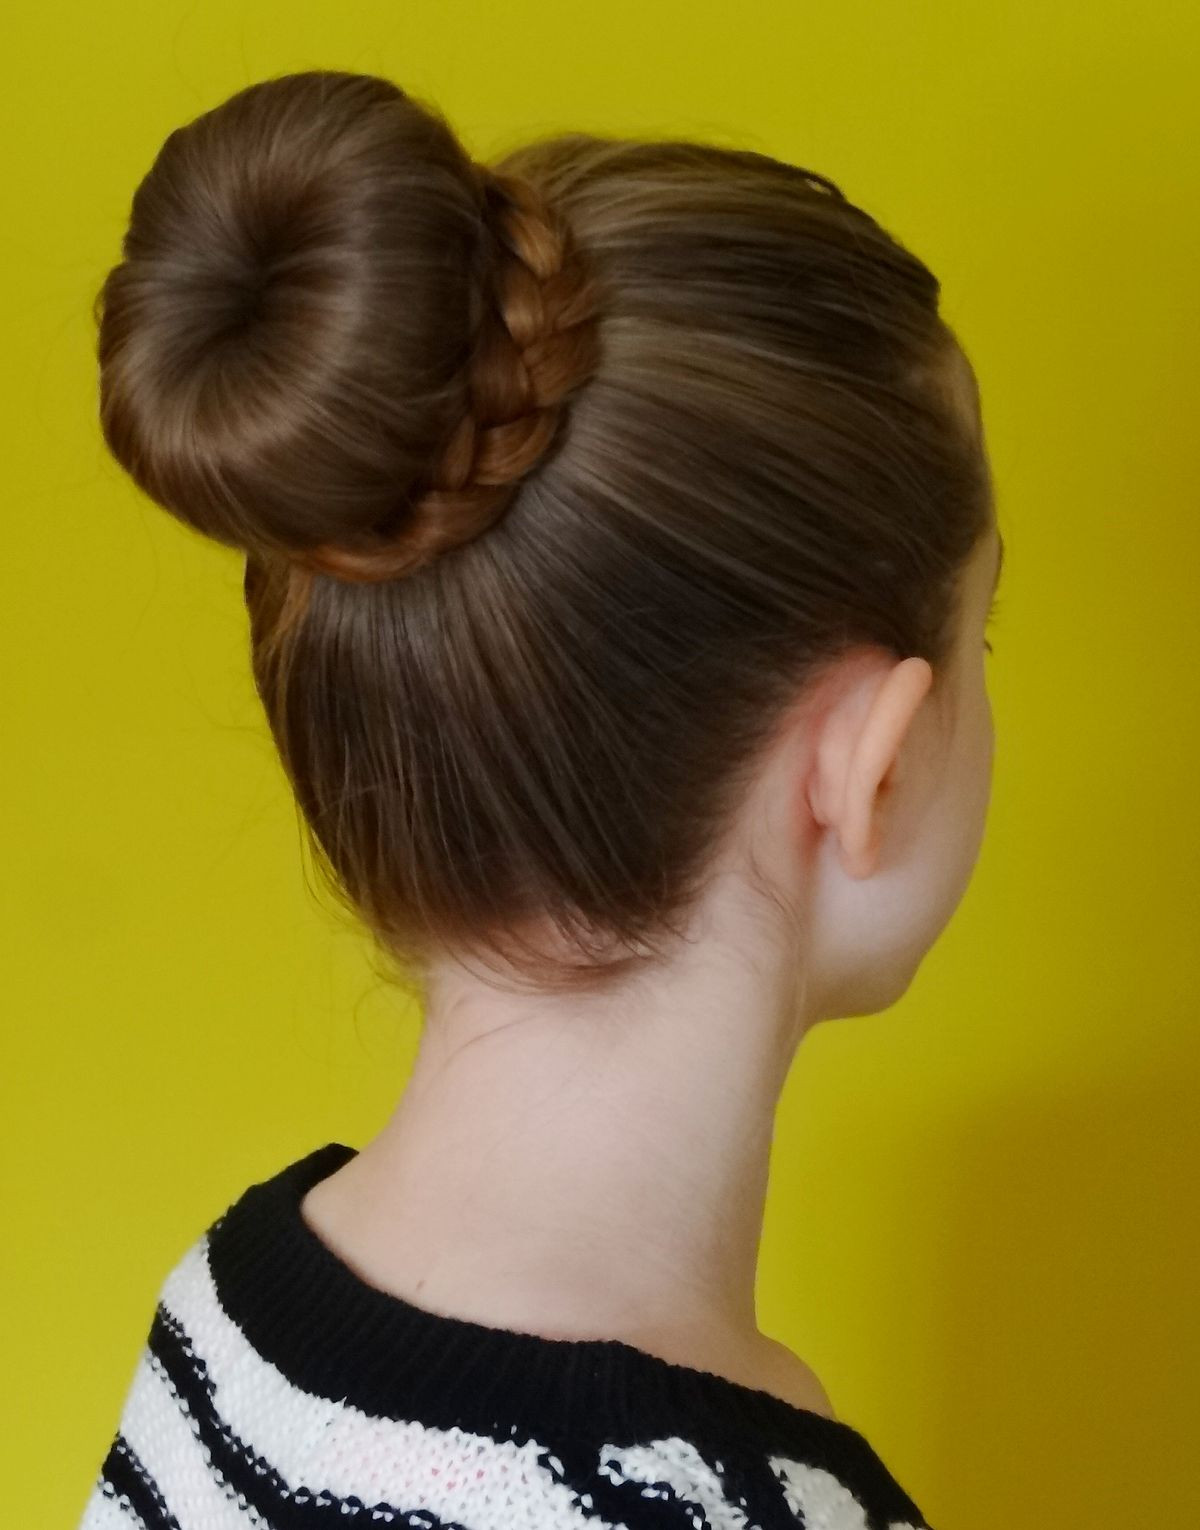 Best ideas about Bun Hairstyles For Girls . Save or Pin Bun hairstyle Now.